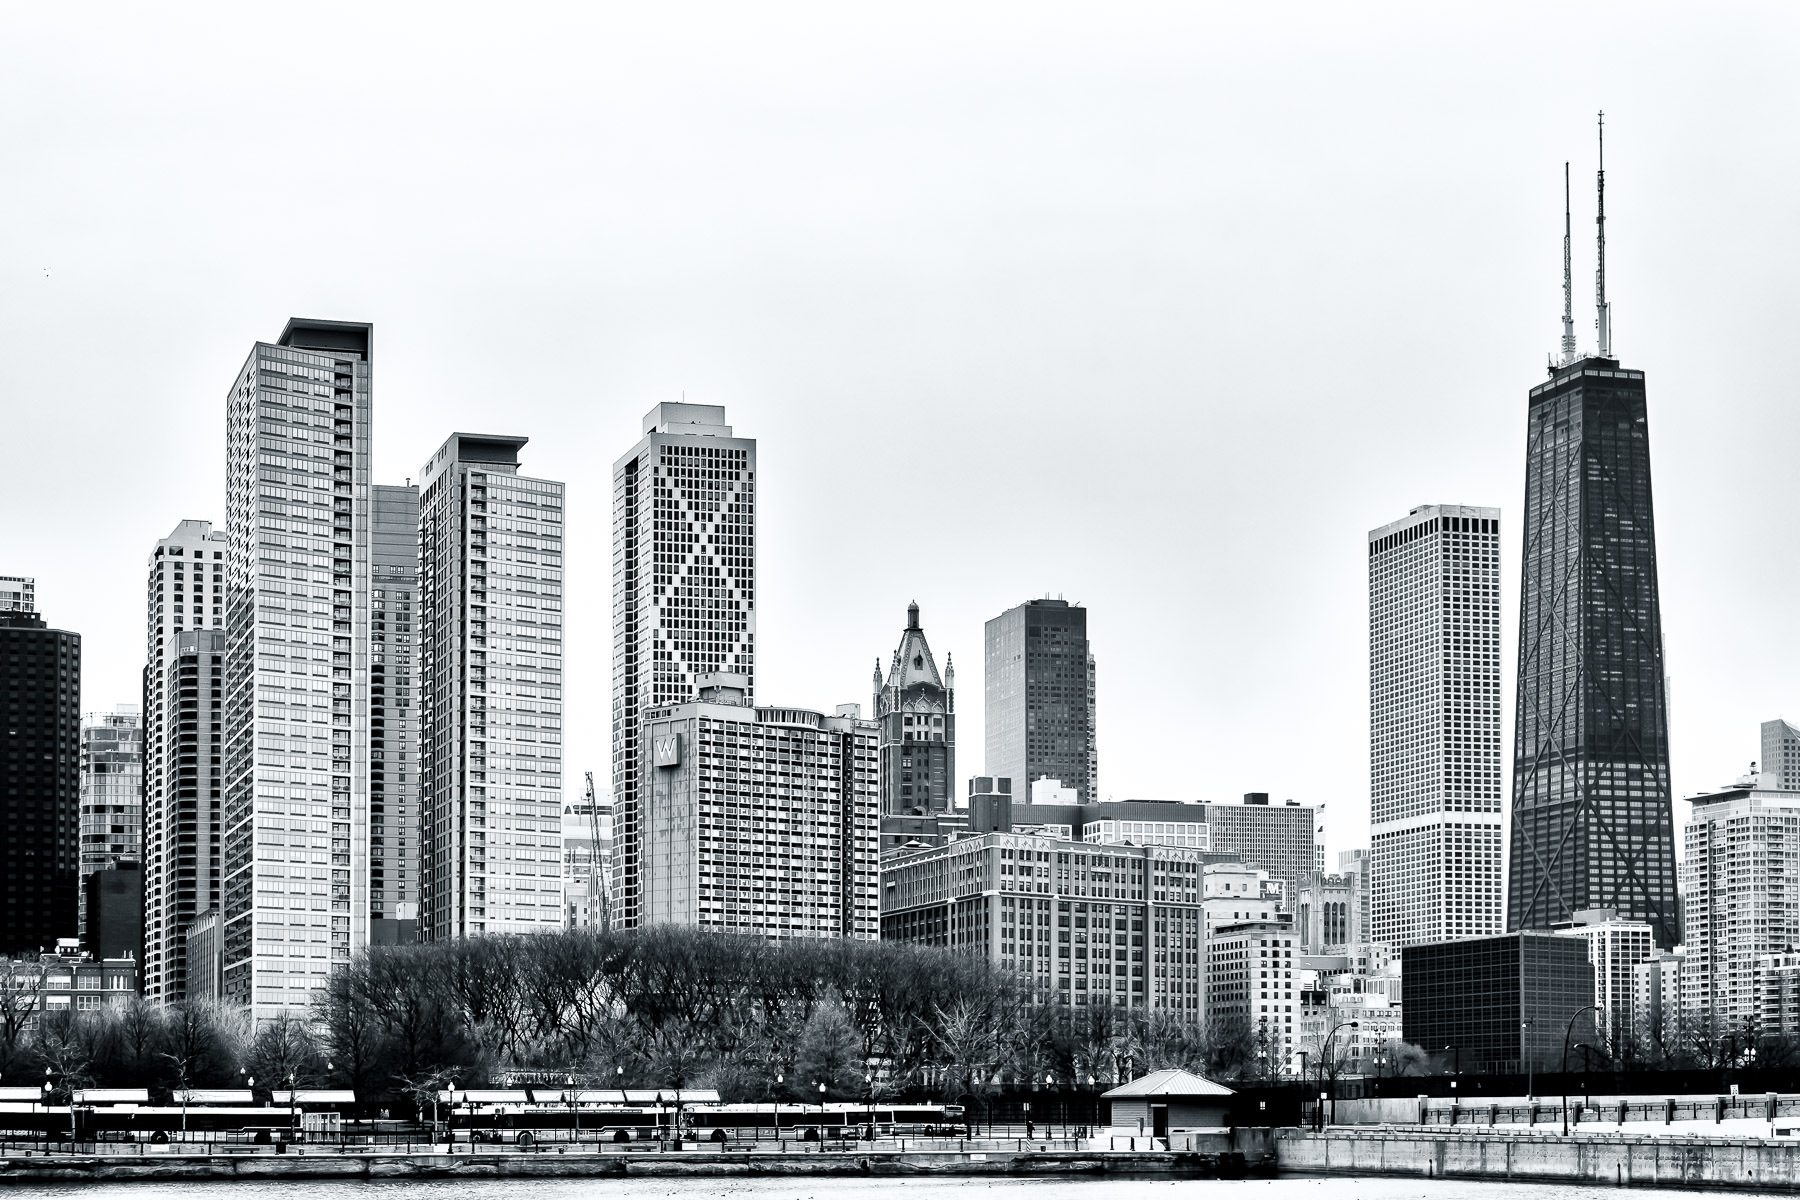 Chicago's 100-story-tall John Hancock Center rises over the city's Gold Coast and Streeterville neighborhoods on a cold, overcast winter day.